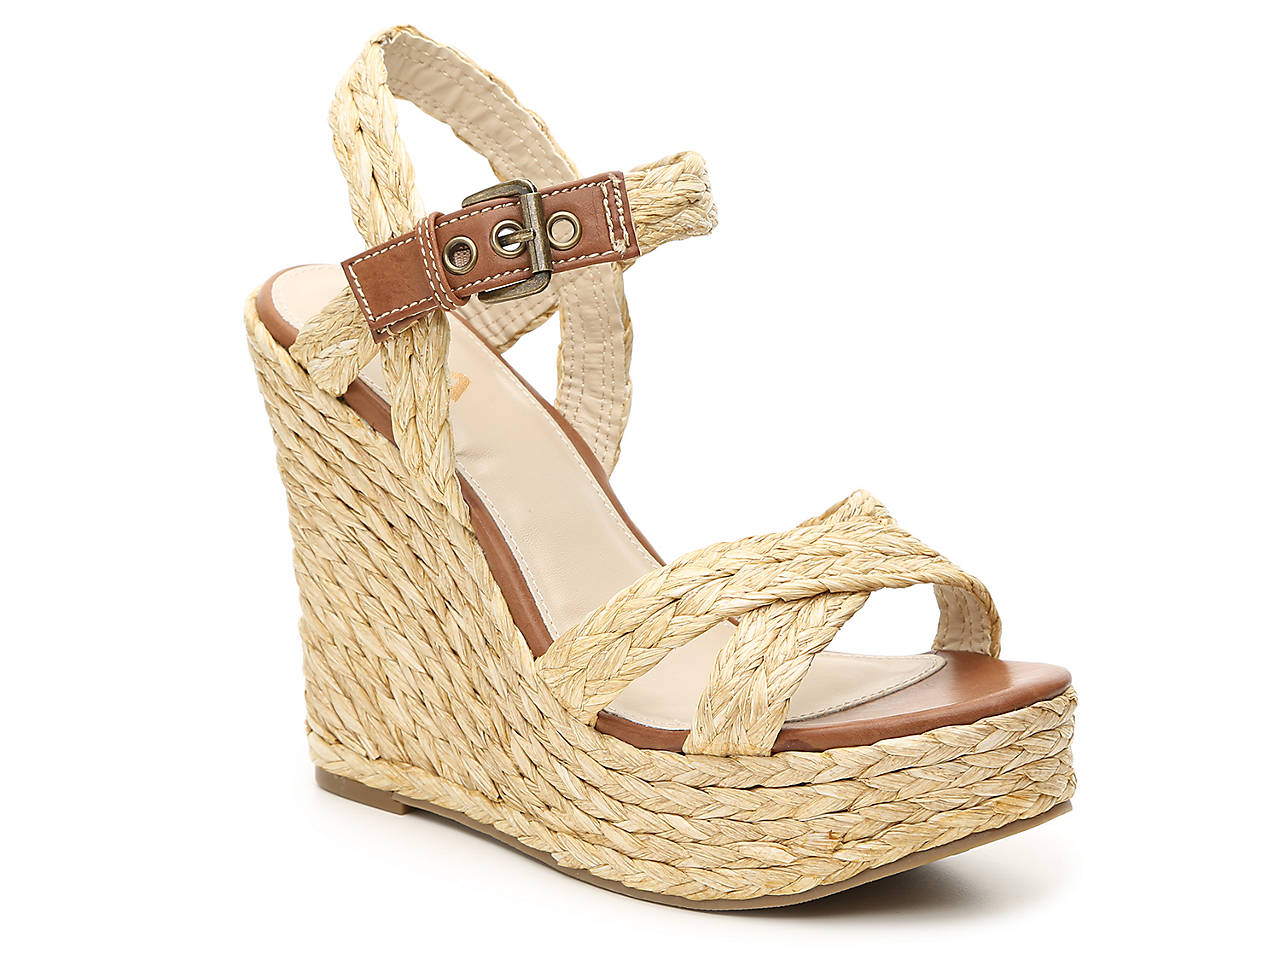 aaa807e1ee9 Mia Leila Espadrille Wedge Sandal Women s Shoes